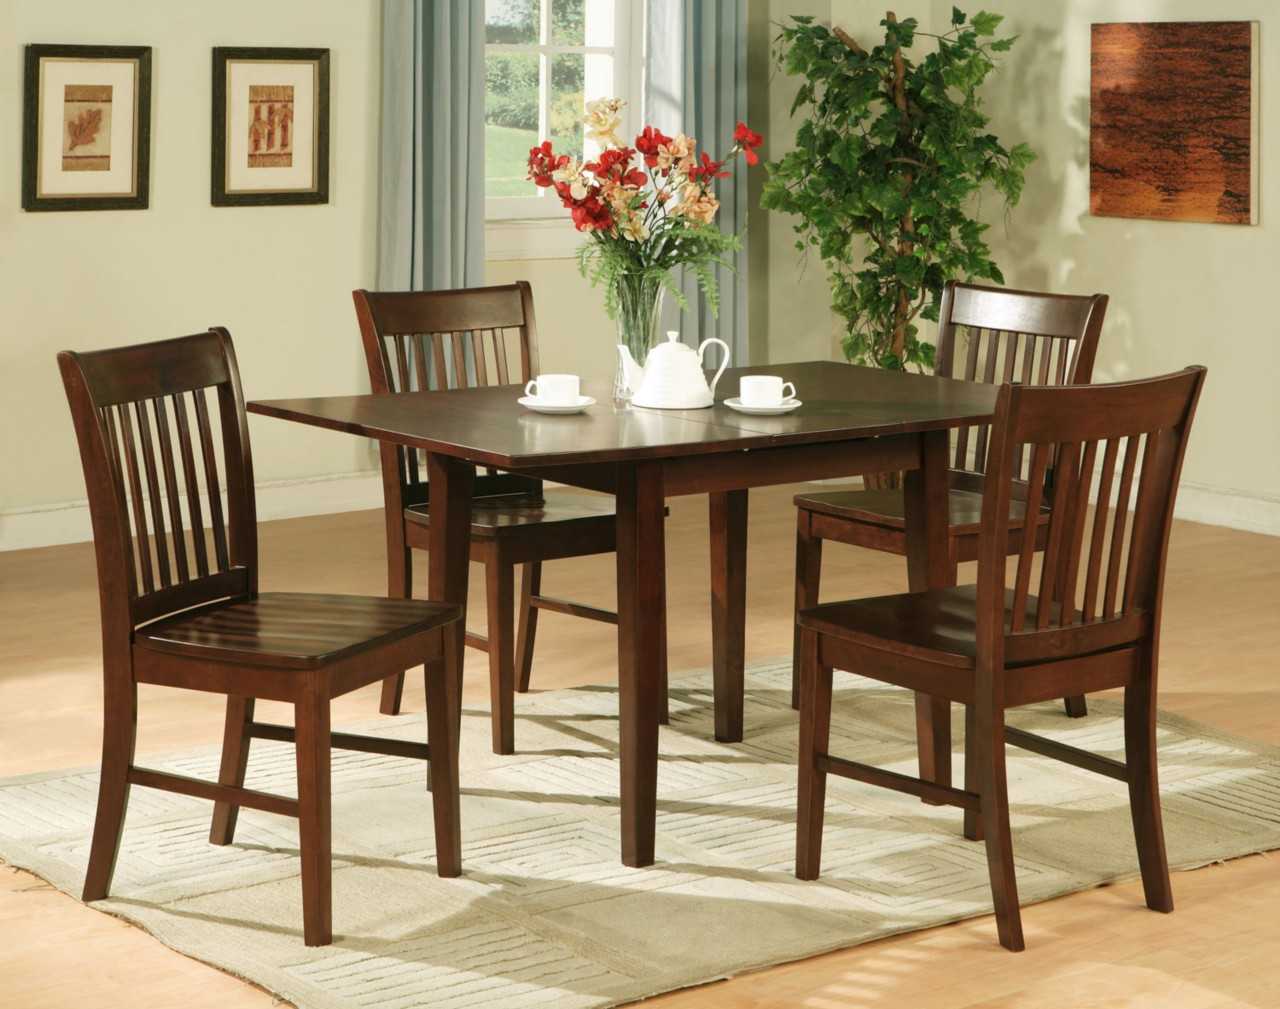 5pc rectangular kitchen dinette table 4 chairs mahogany ebay for Kitchen table sets with bench and chairs